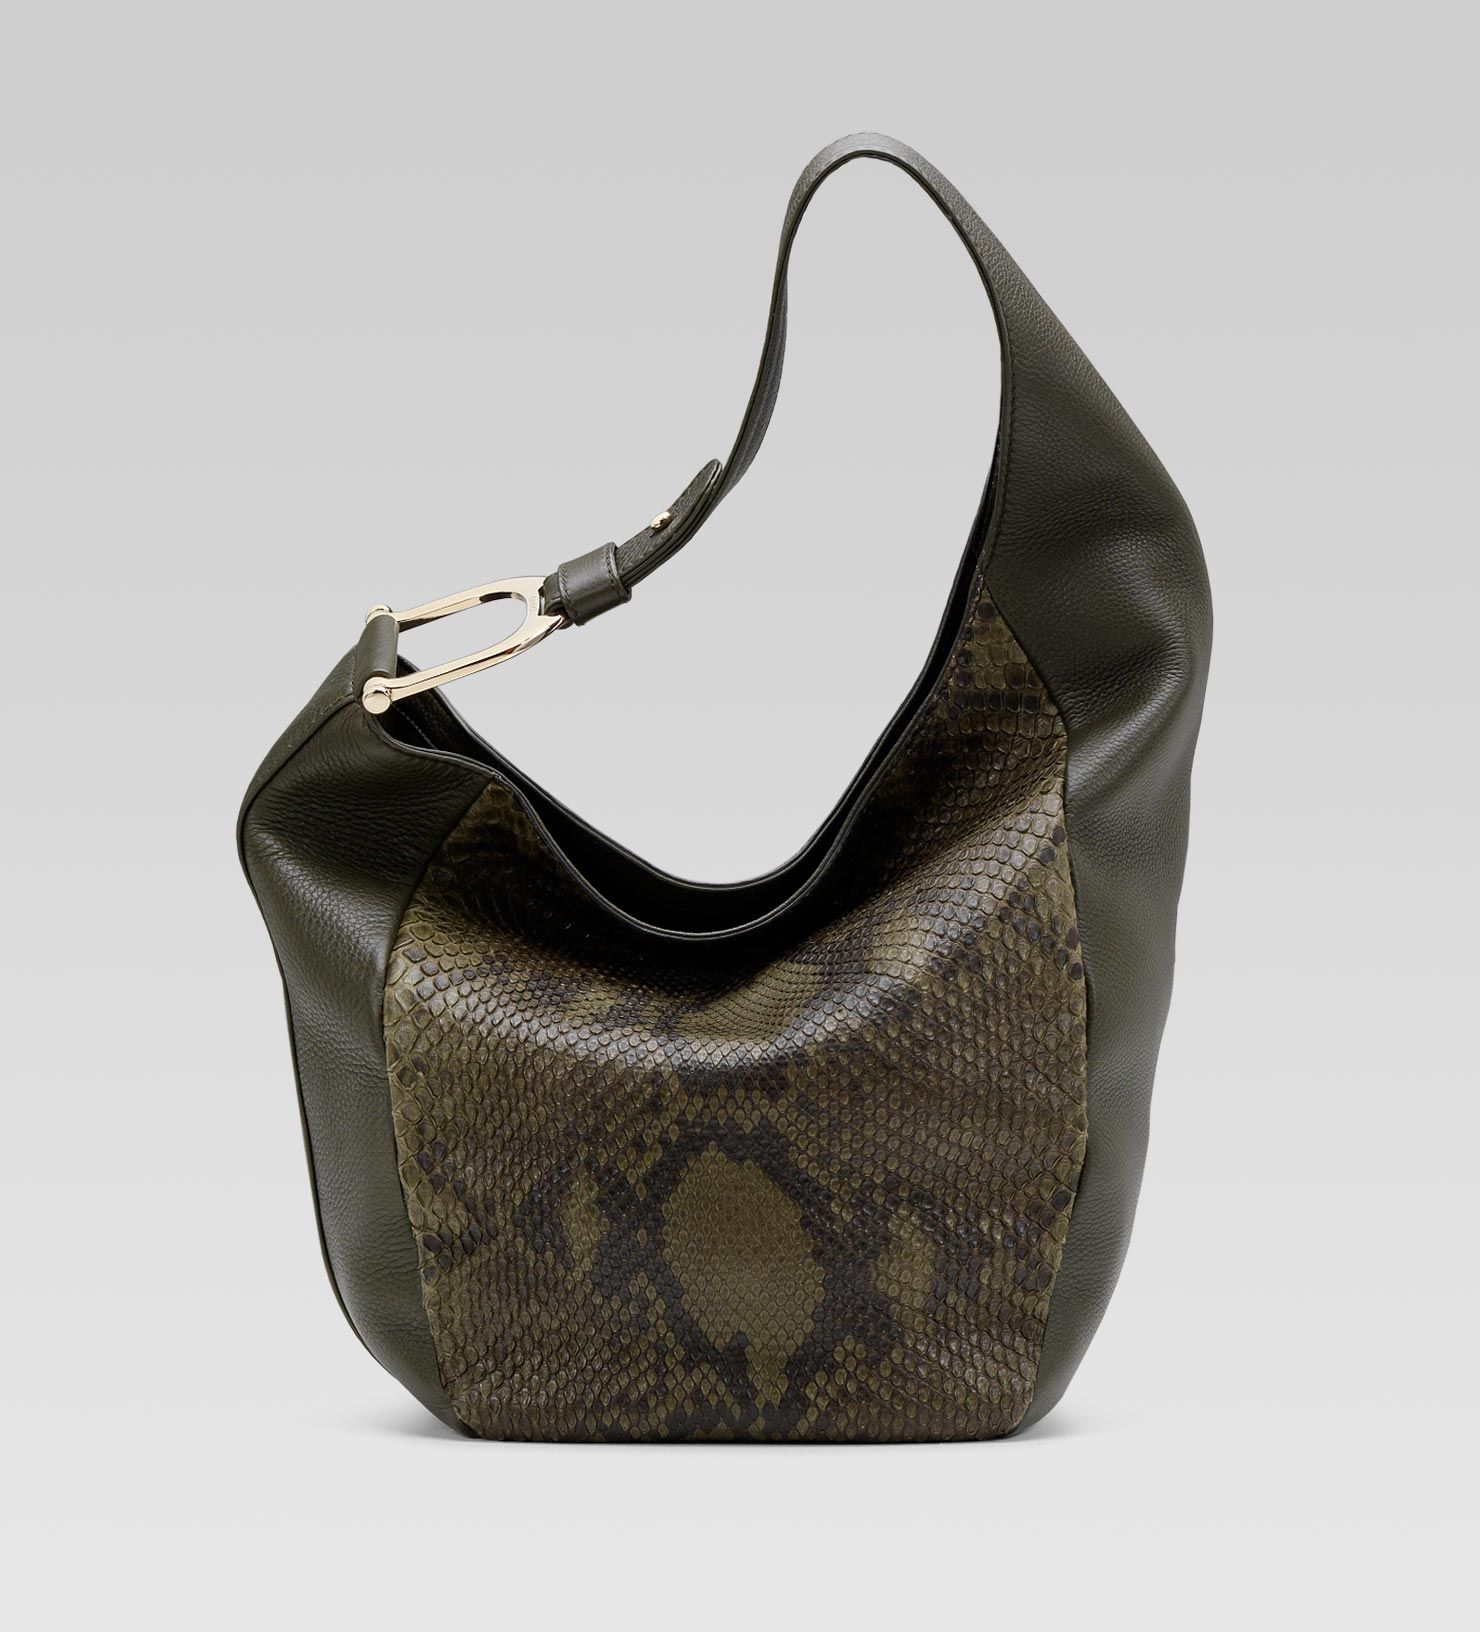 81fe62a9577 Gucci Asymmetrical Hobo. Great for travelling